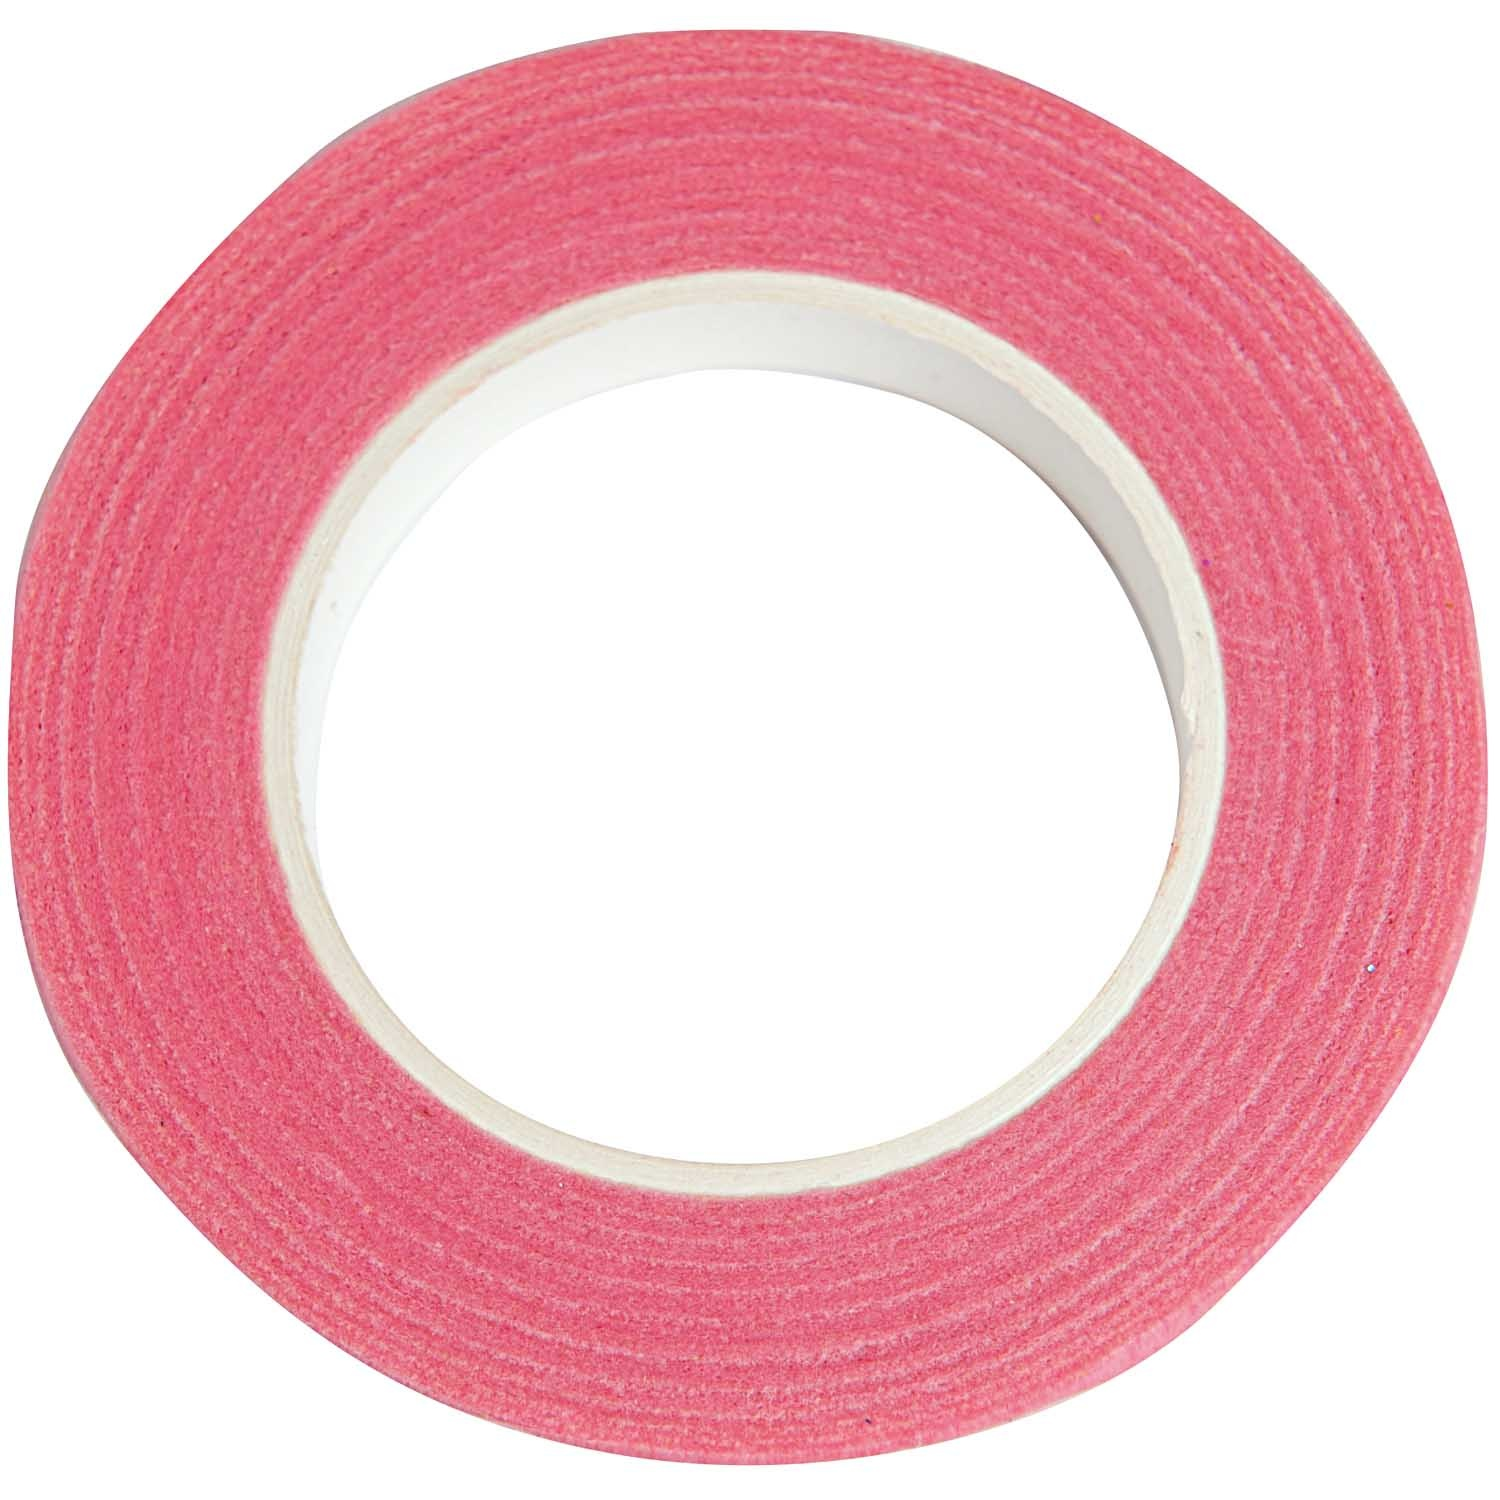 Rico NAY FLORAL CREPE TAPE, PINK 12 MM X 27,5 M